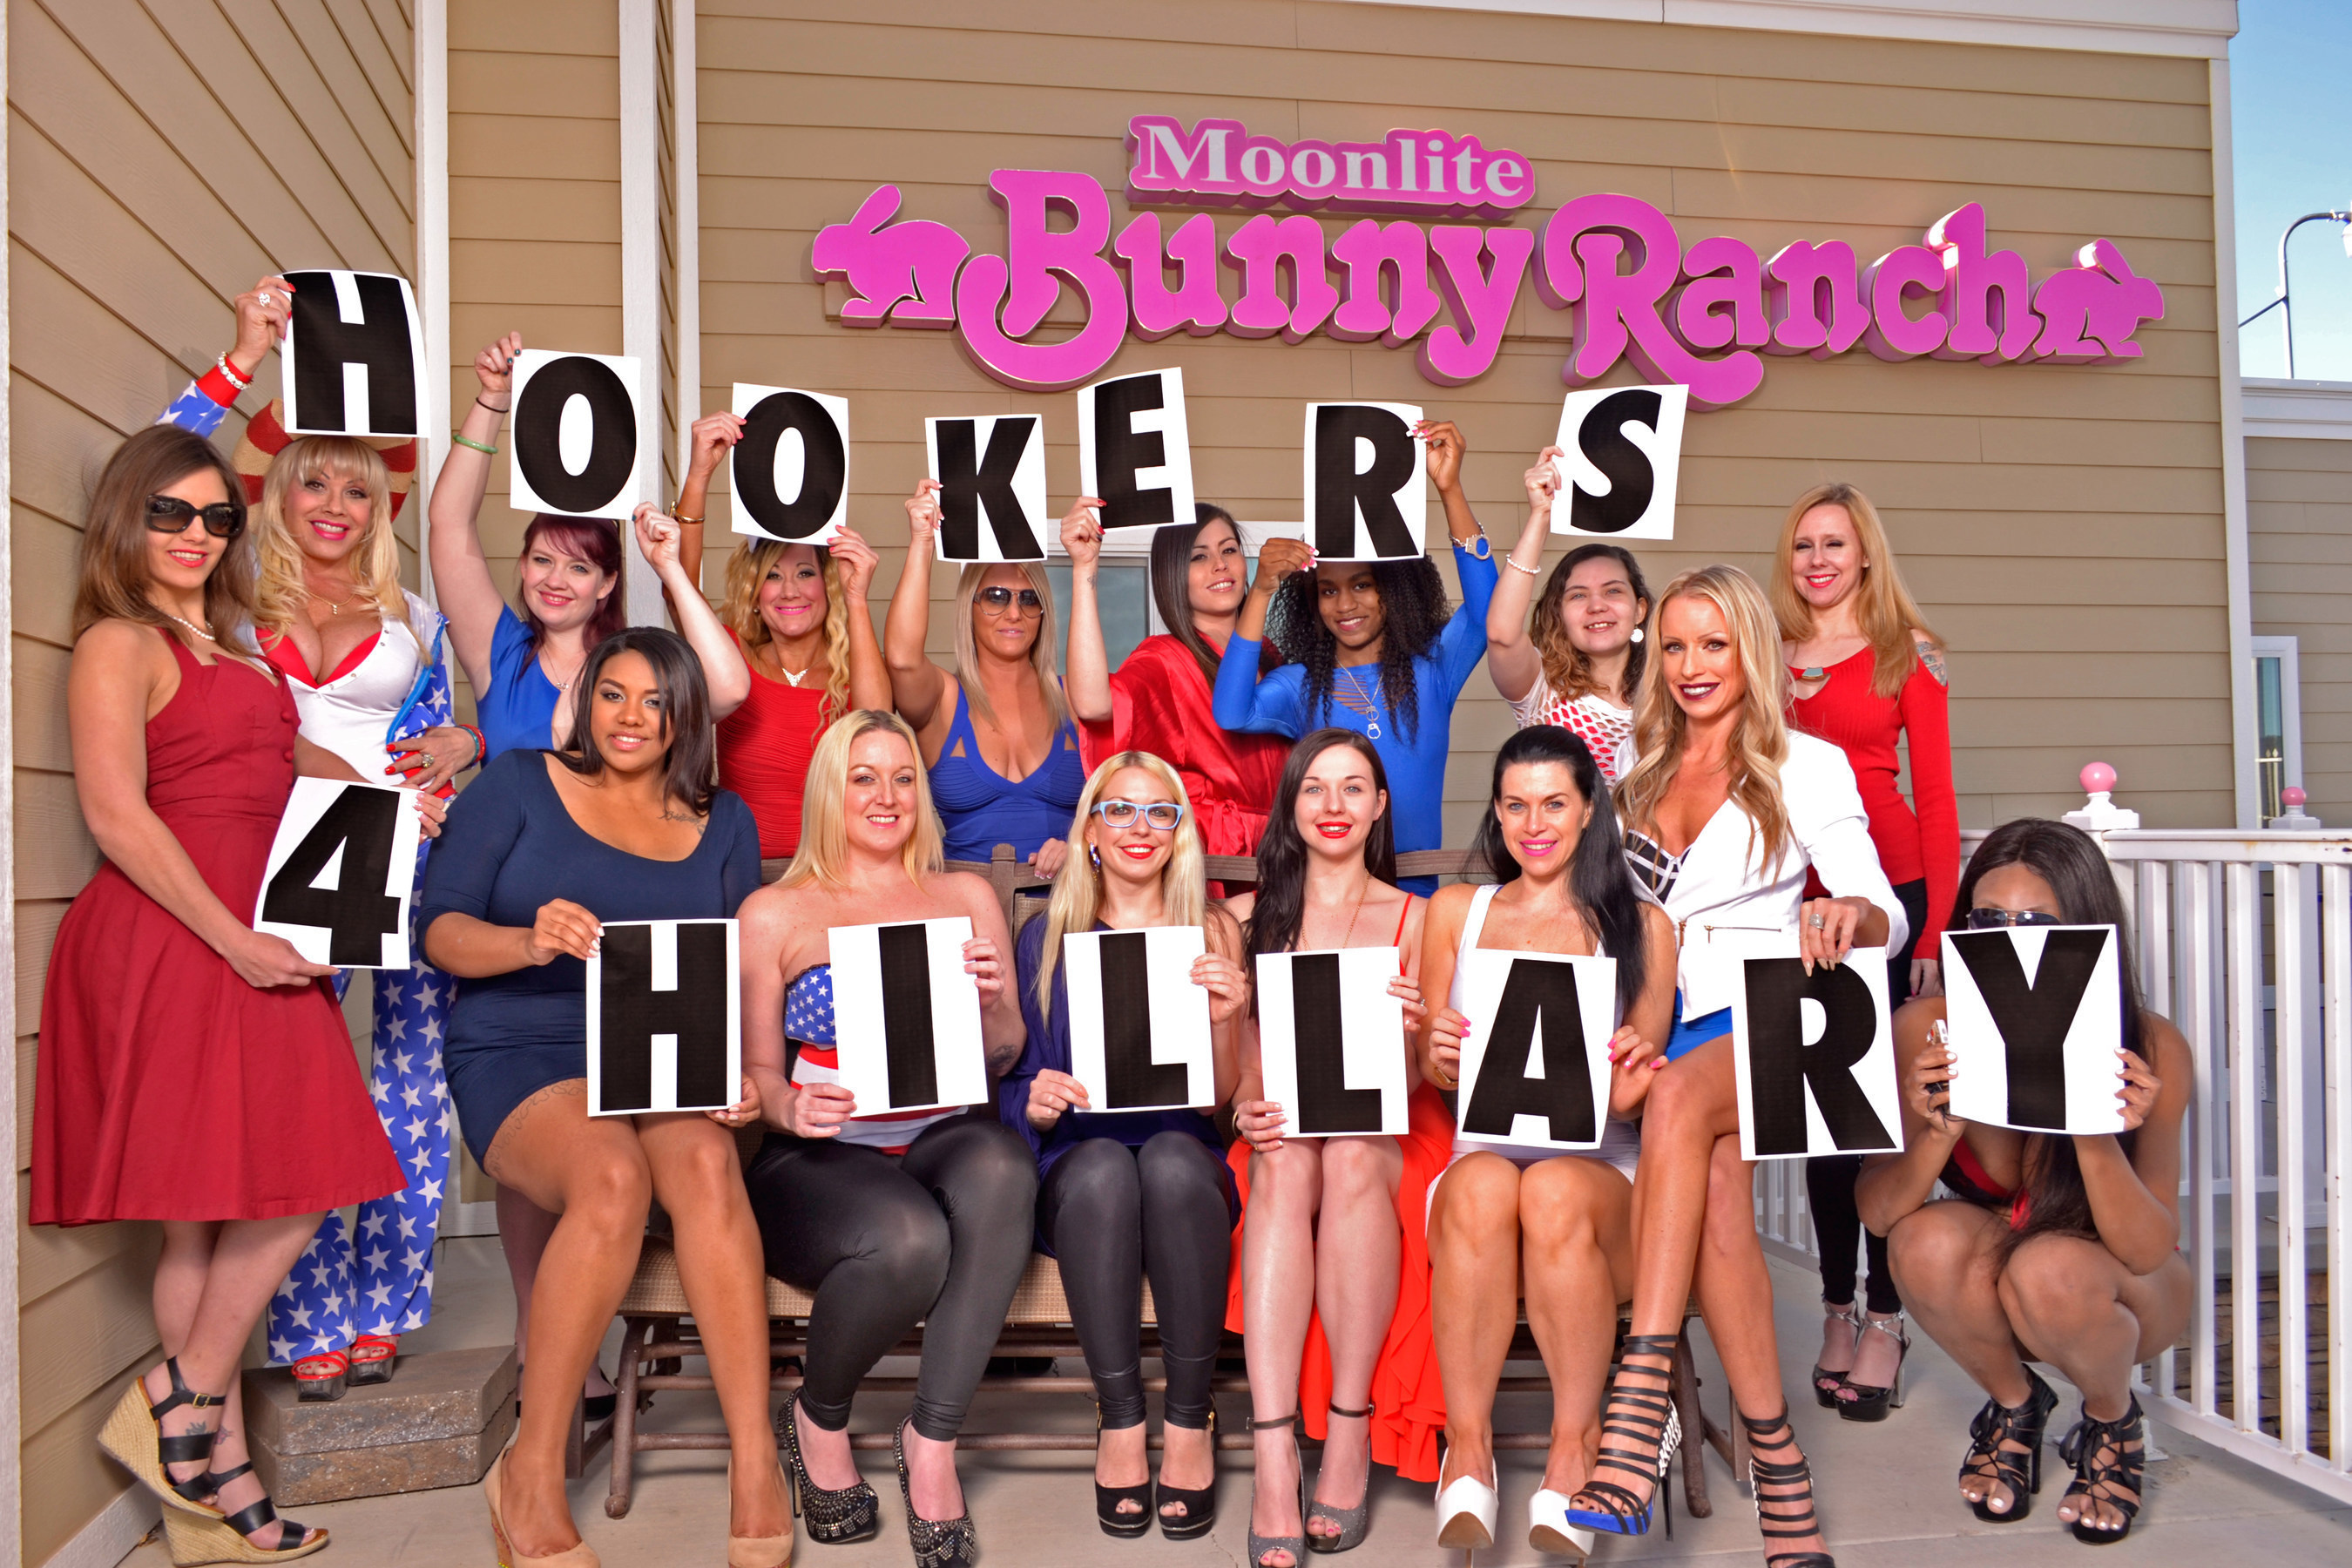 """Hookers For Hillary! Bunny Ranch Sex Workers Announce Endorsement Of Hillary Clinton For President. Prostitutes at Dennis Hof's world famous """"Moonlite Bunny Ranch"""" legal brothel in Carson City, Nevada are banding together to announce their support of the Hillary Clinton presidential campaign.  Following Clinton's formal announcement, the sex workers launched their """"Hookers For Hillary"""" initiative, drafting a four-point platform to explain their endorsement. More information at www.hookersforhillary.com #hookersforhillary"""